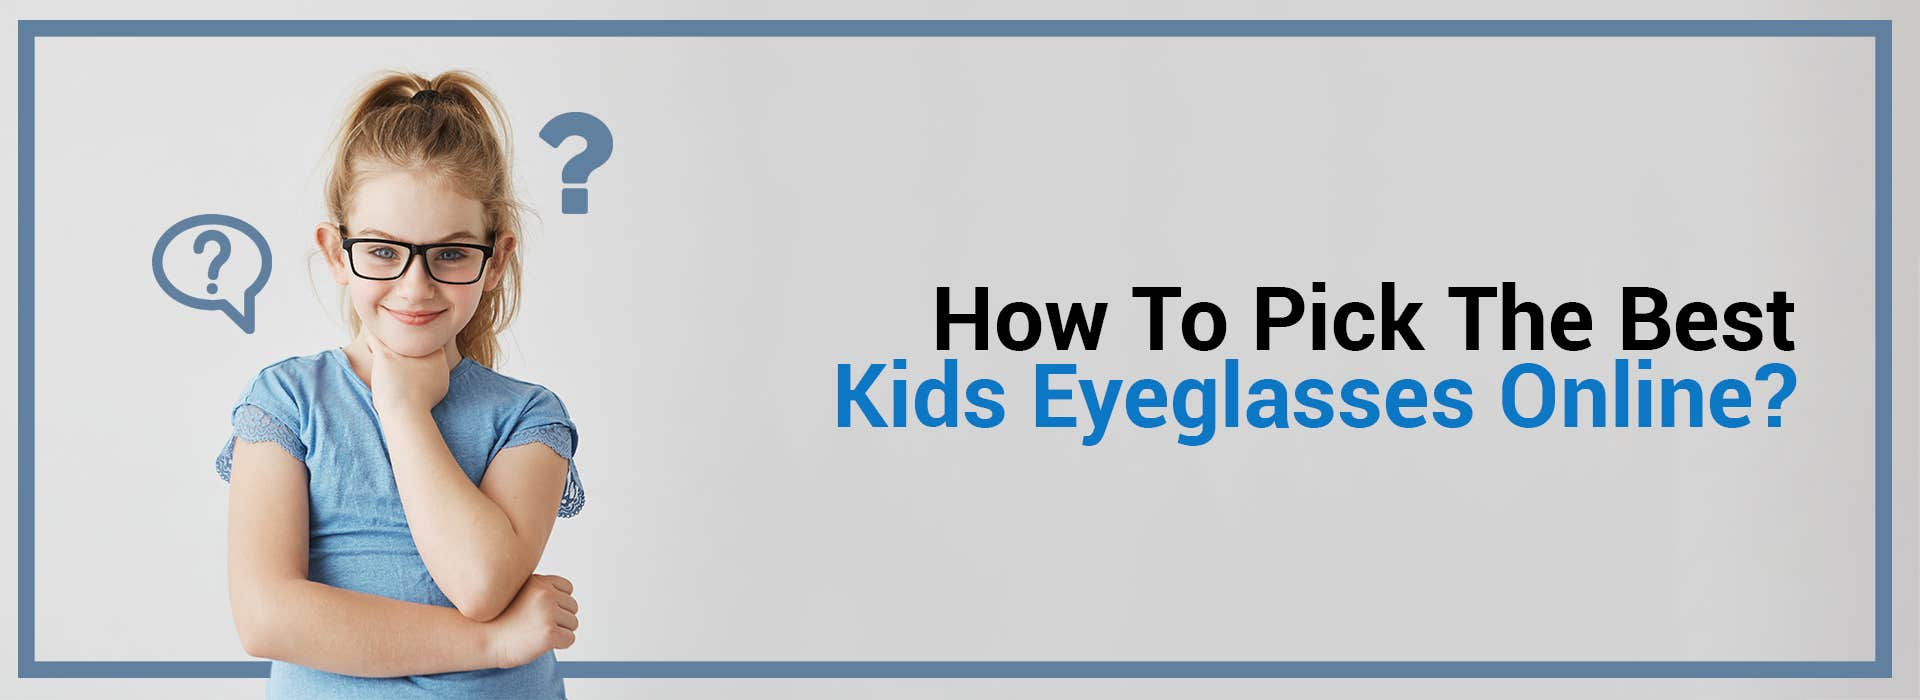 How To Pick The Best Kids Eyeglasses Online